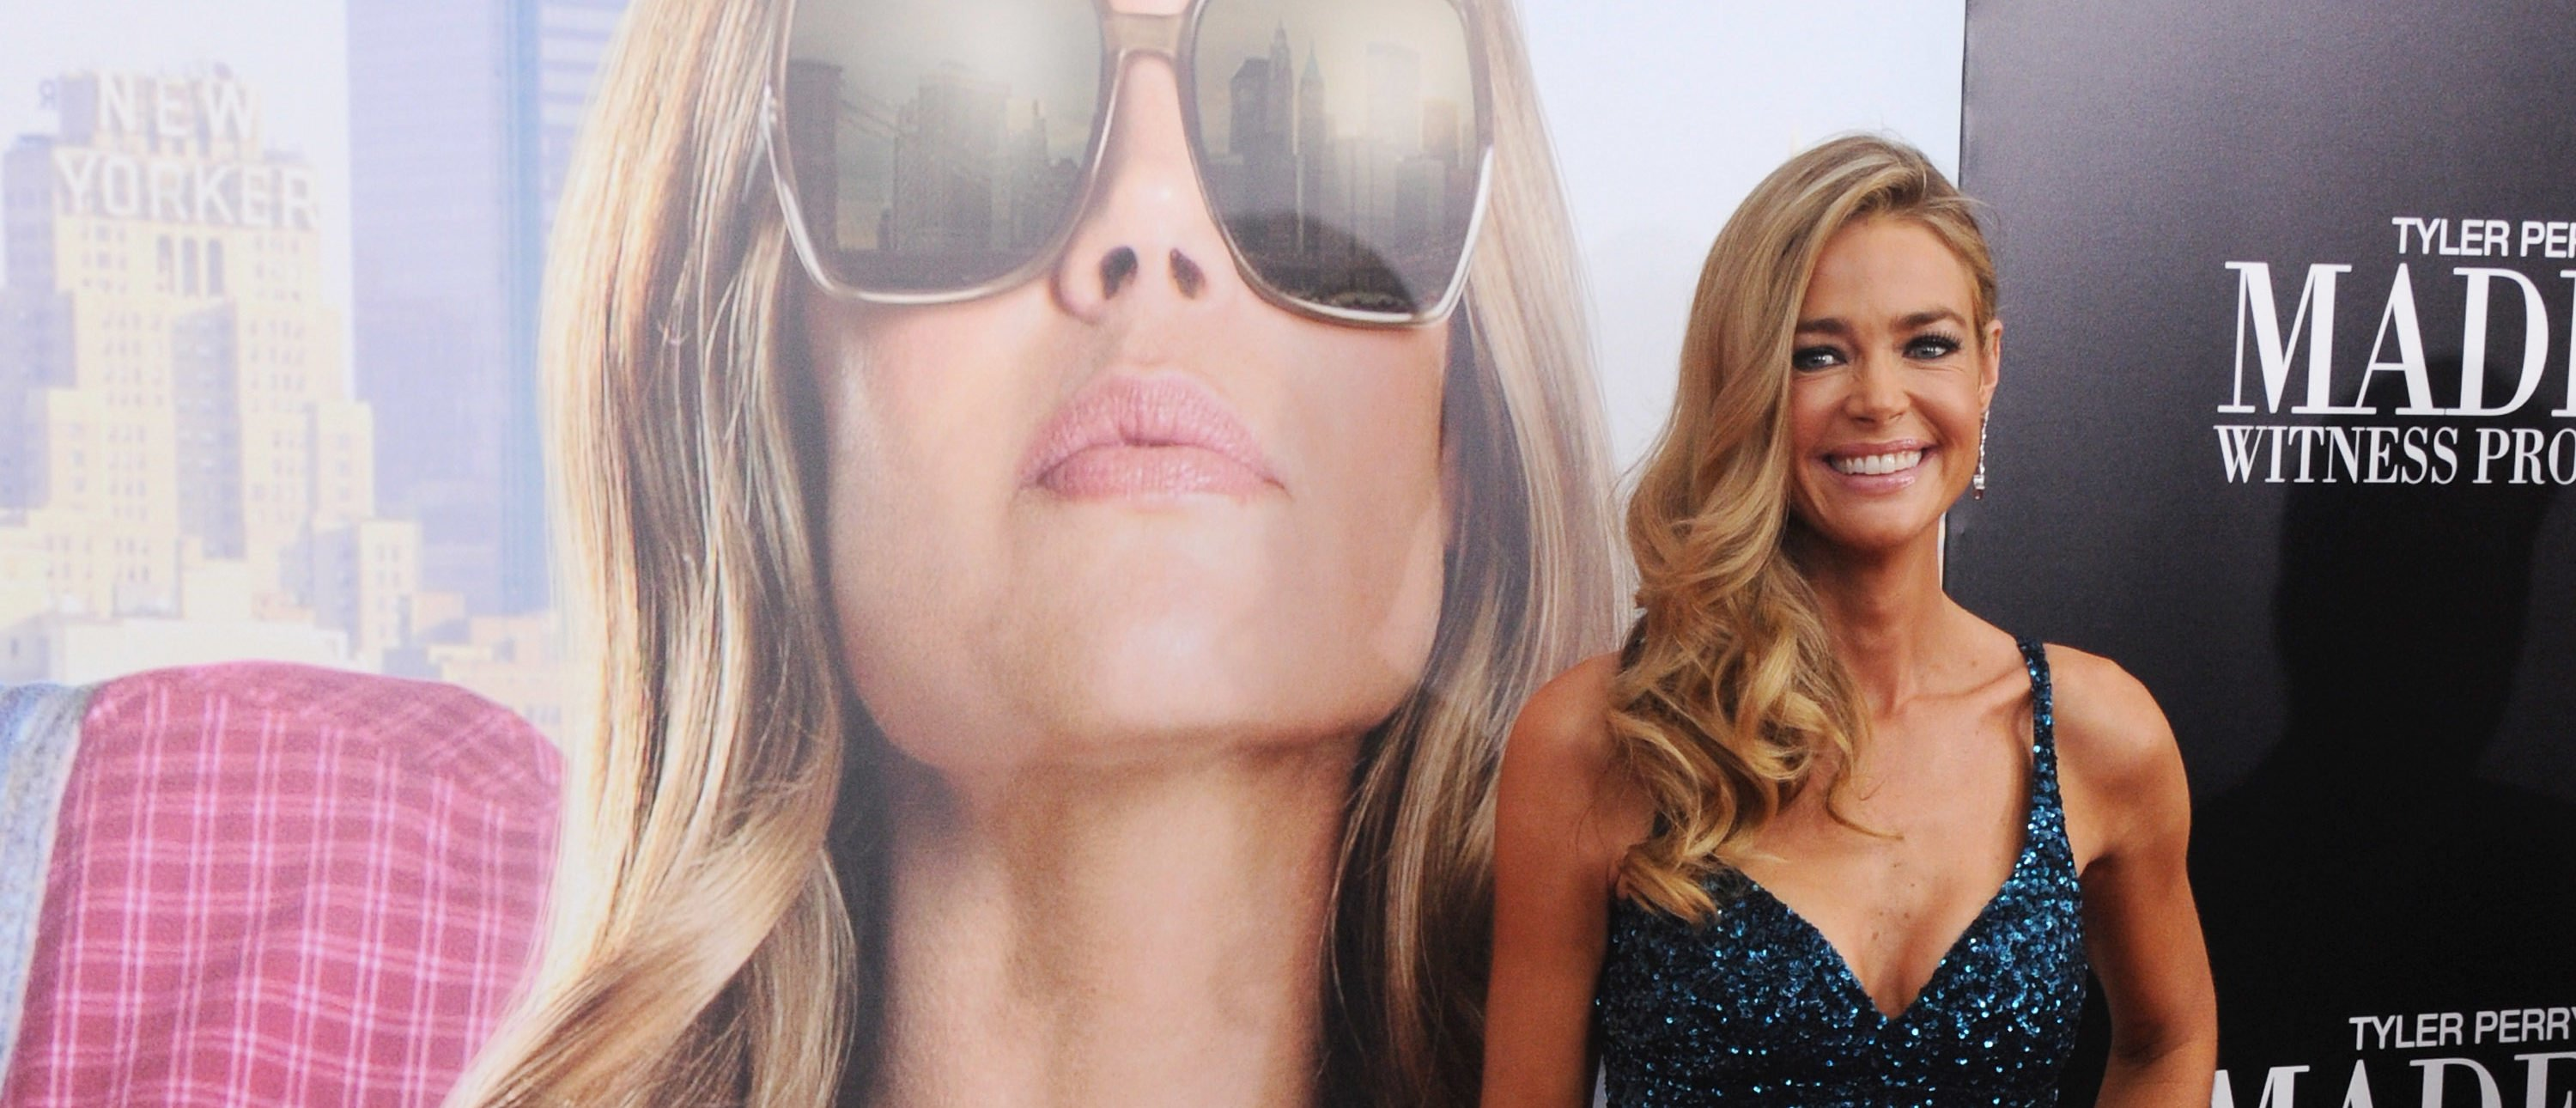 Denise Richards Responds To Claims Of Affair With Brandi Glanville After Picture Of Them Kissing Surfaces